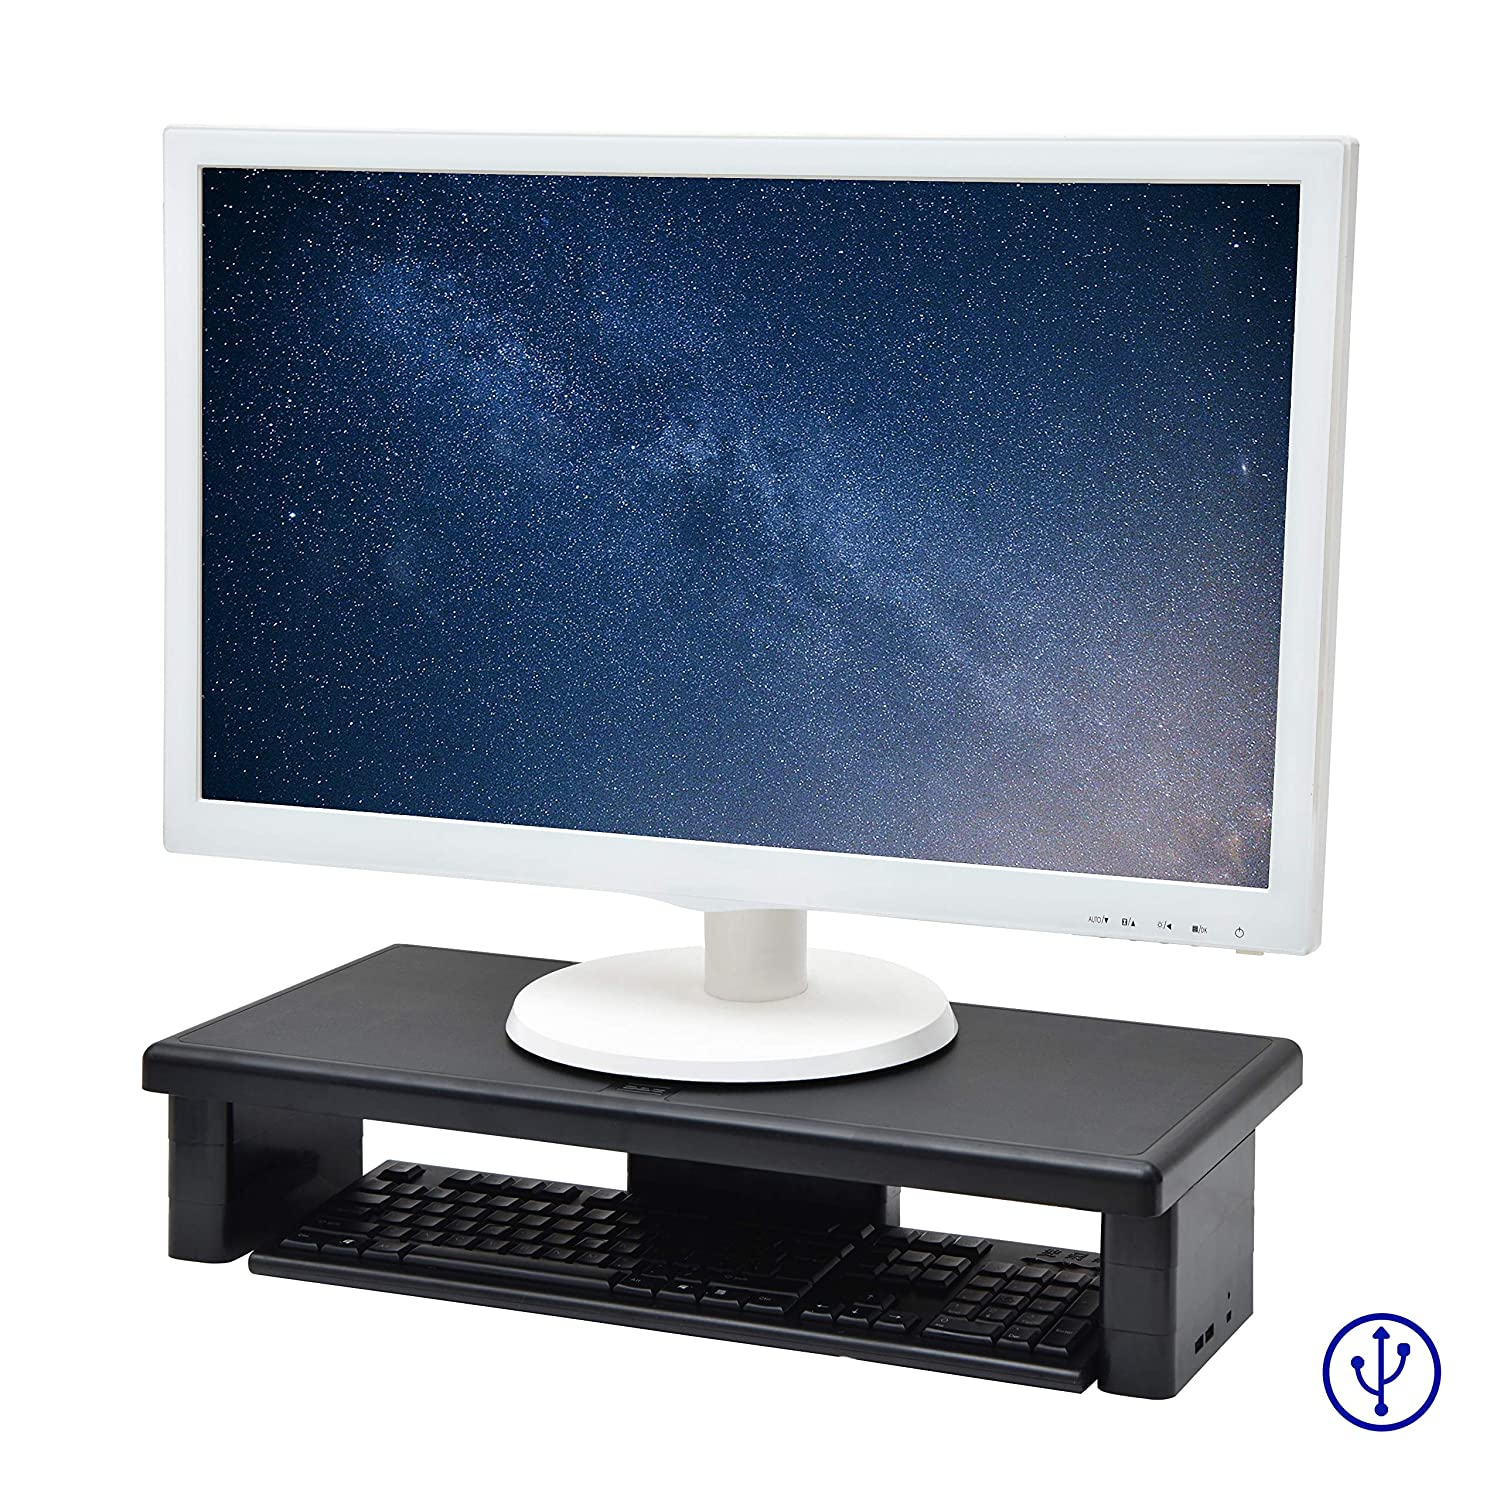 DAC STAX Ultrawide Adjustable, Stackable Desktop Computer Monitor Stand Laptop Riser with 2 USB Charging Ports, Supports up to 66 Pounds, with Keyboard Storage